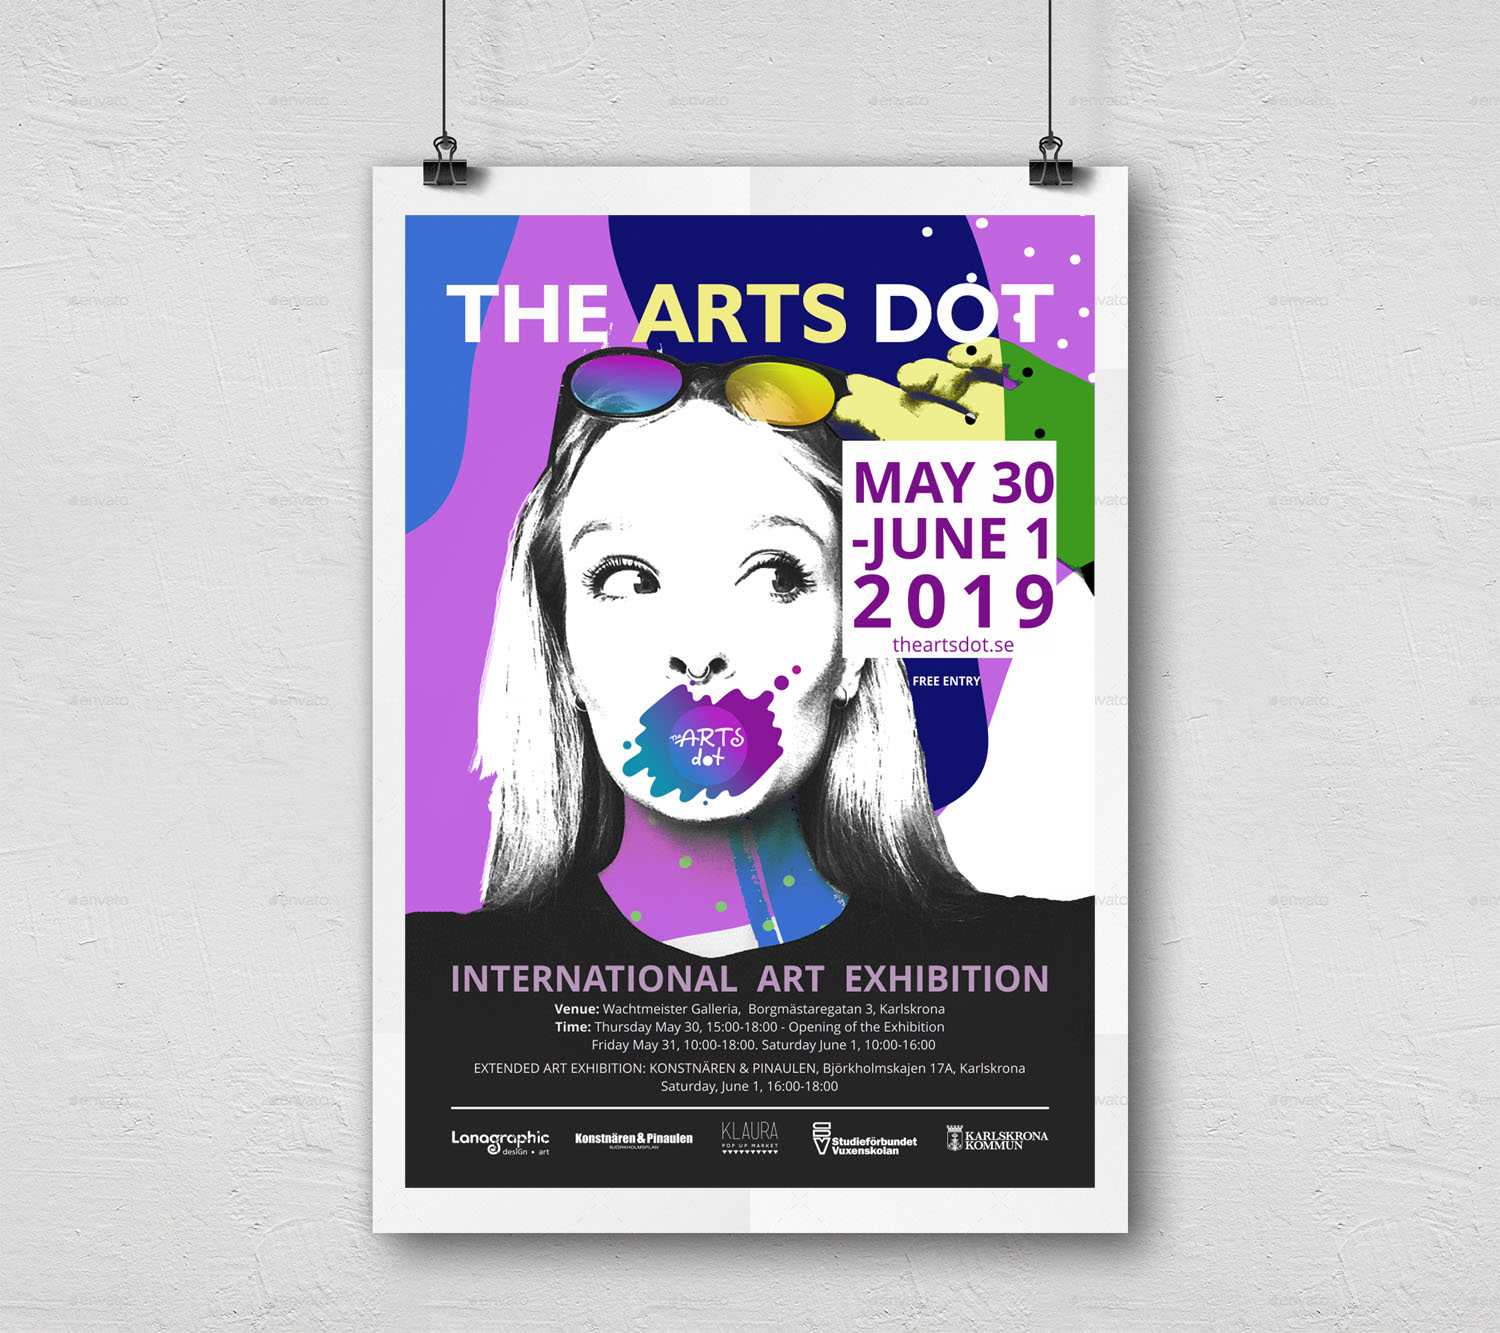 Wall-Poster-theartsdot-1-by Lanagraphic